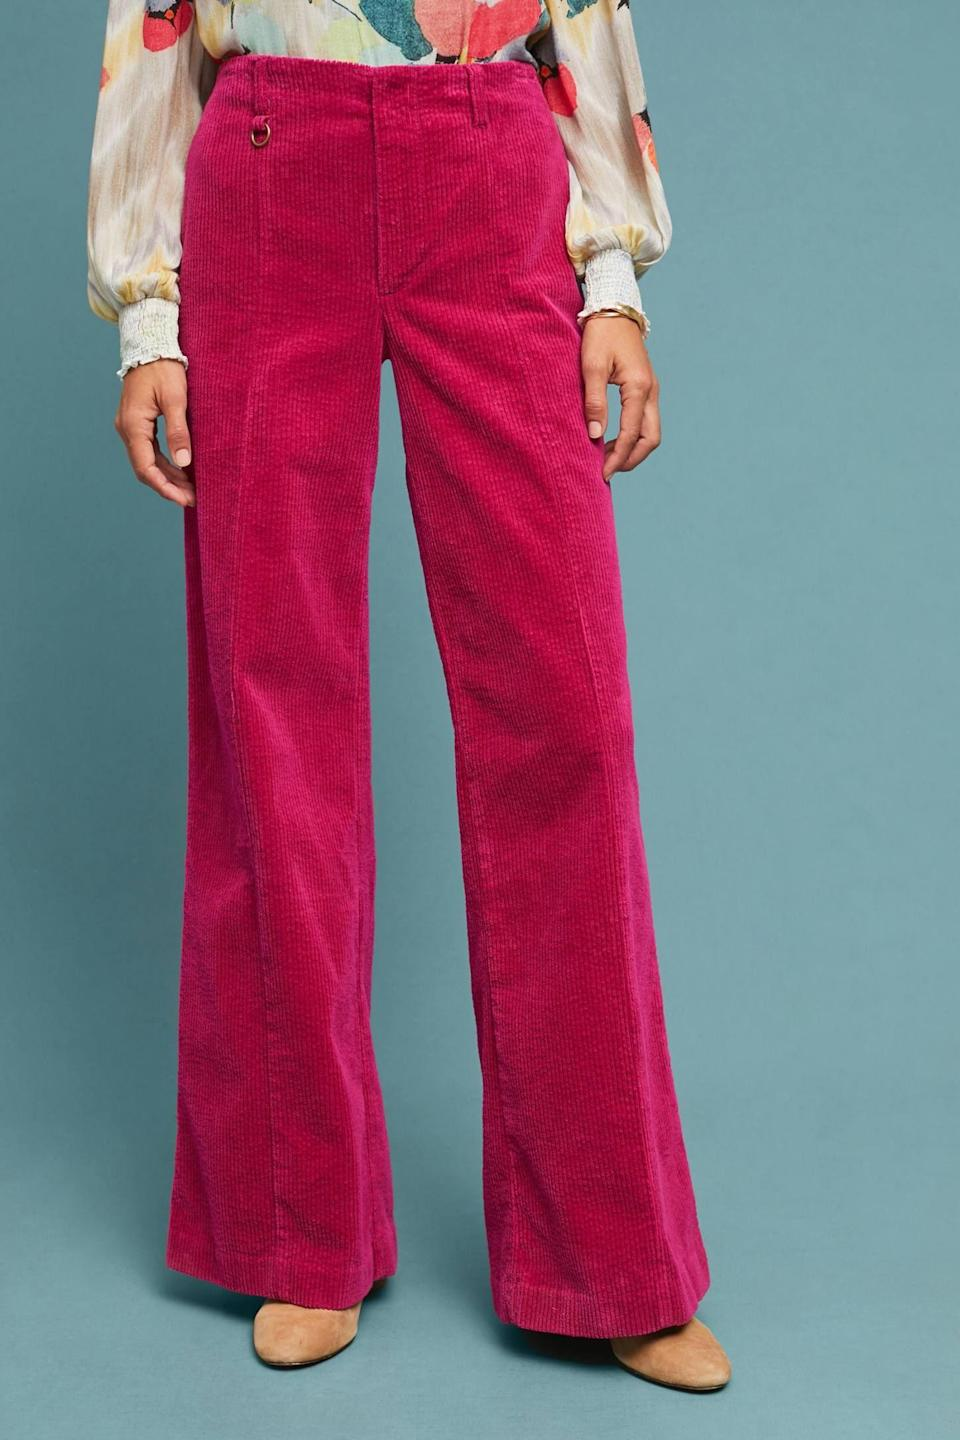 Then add a pair of pink trousers. The colors don't seem like they'd work together, but they just do.